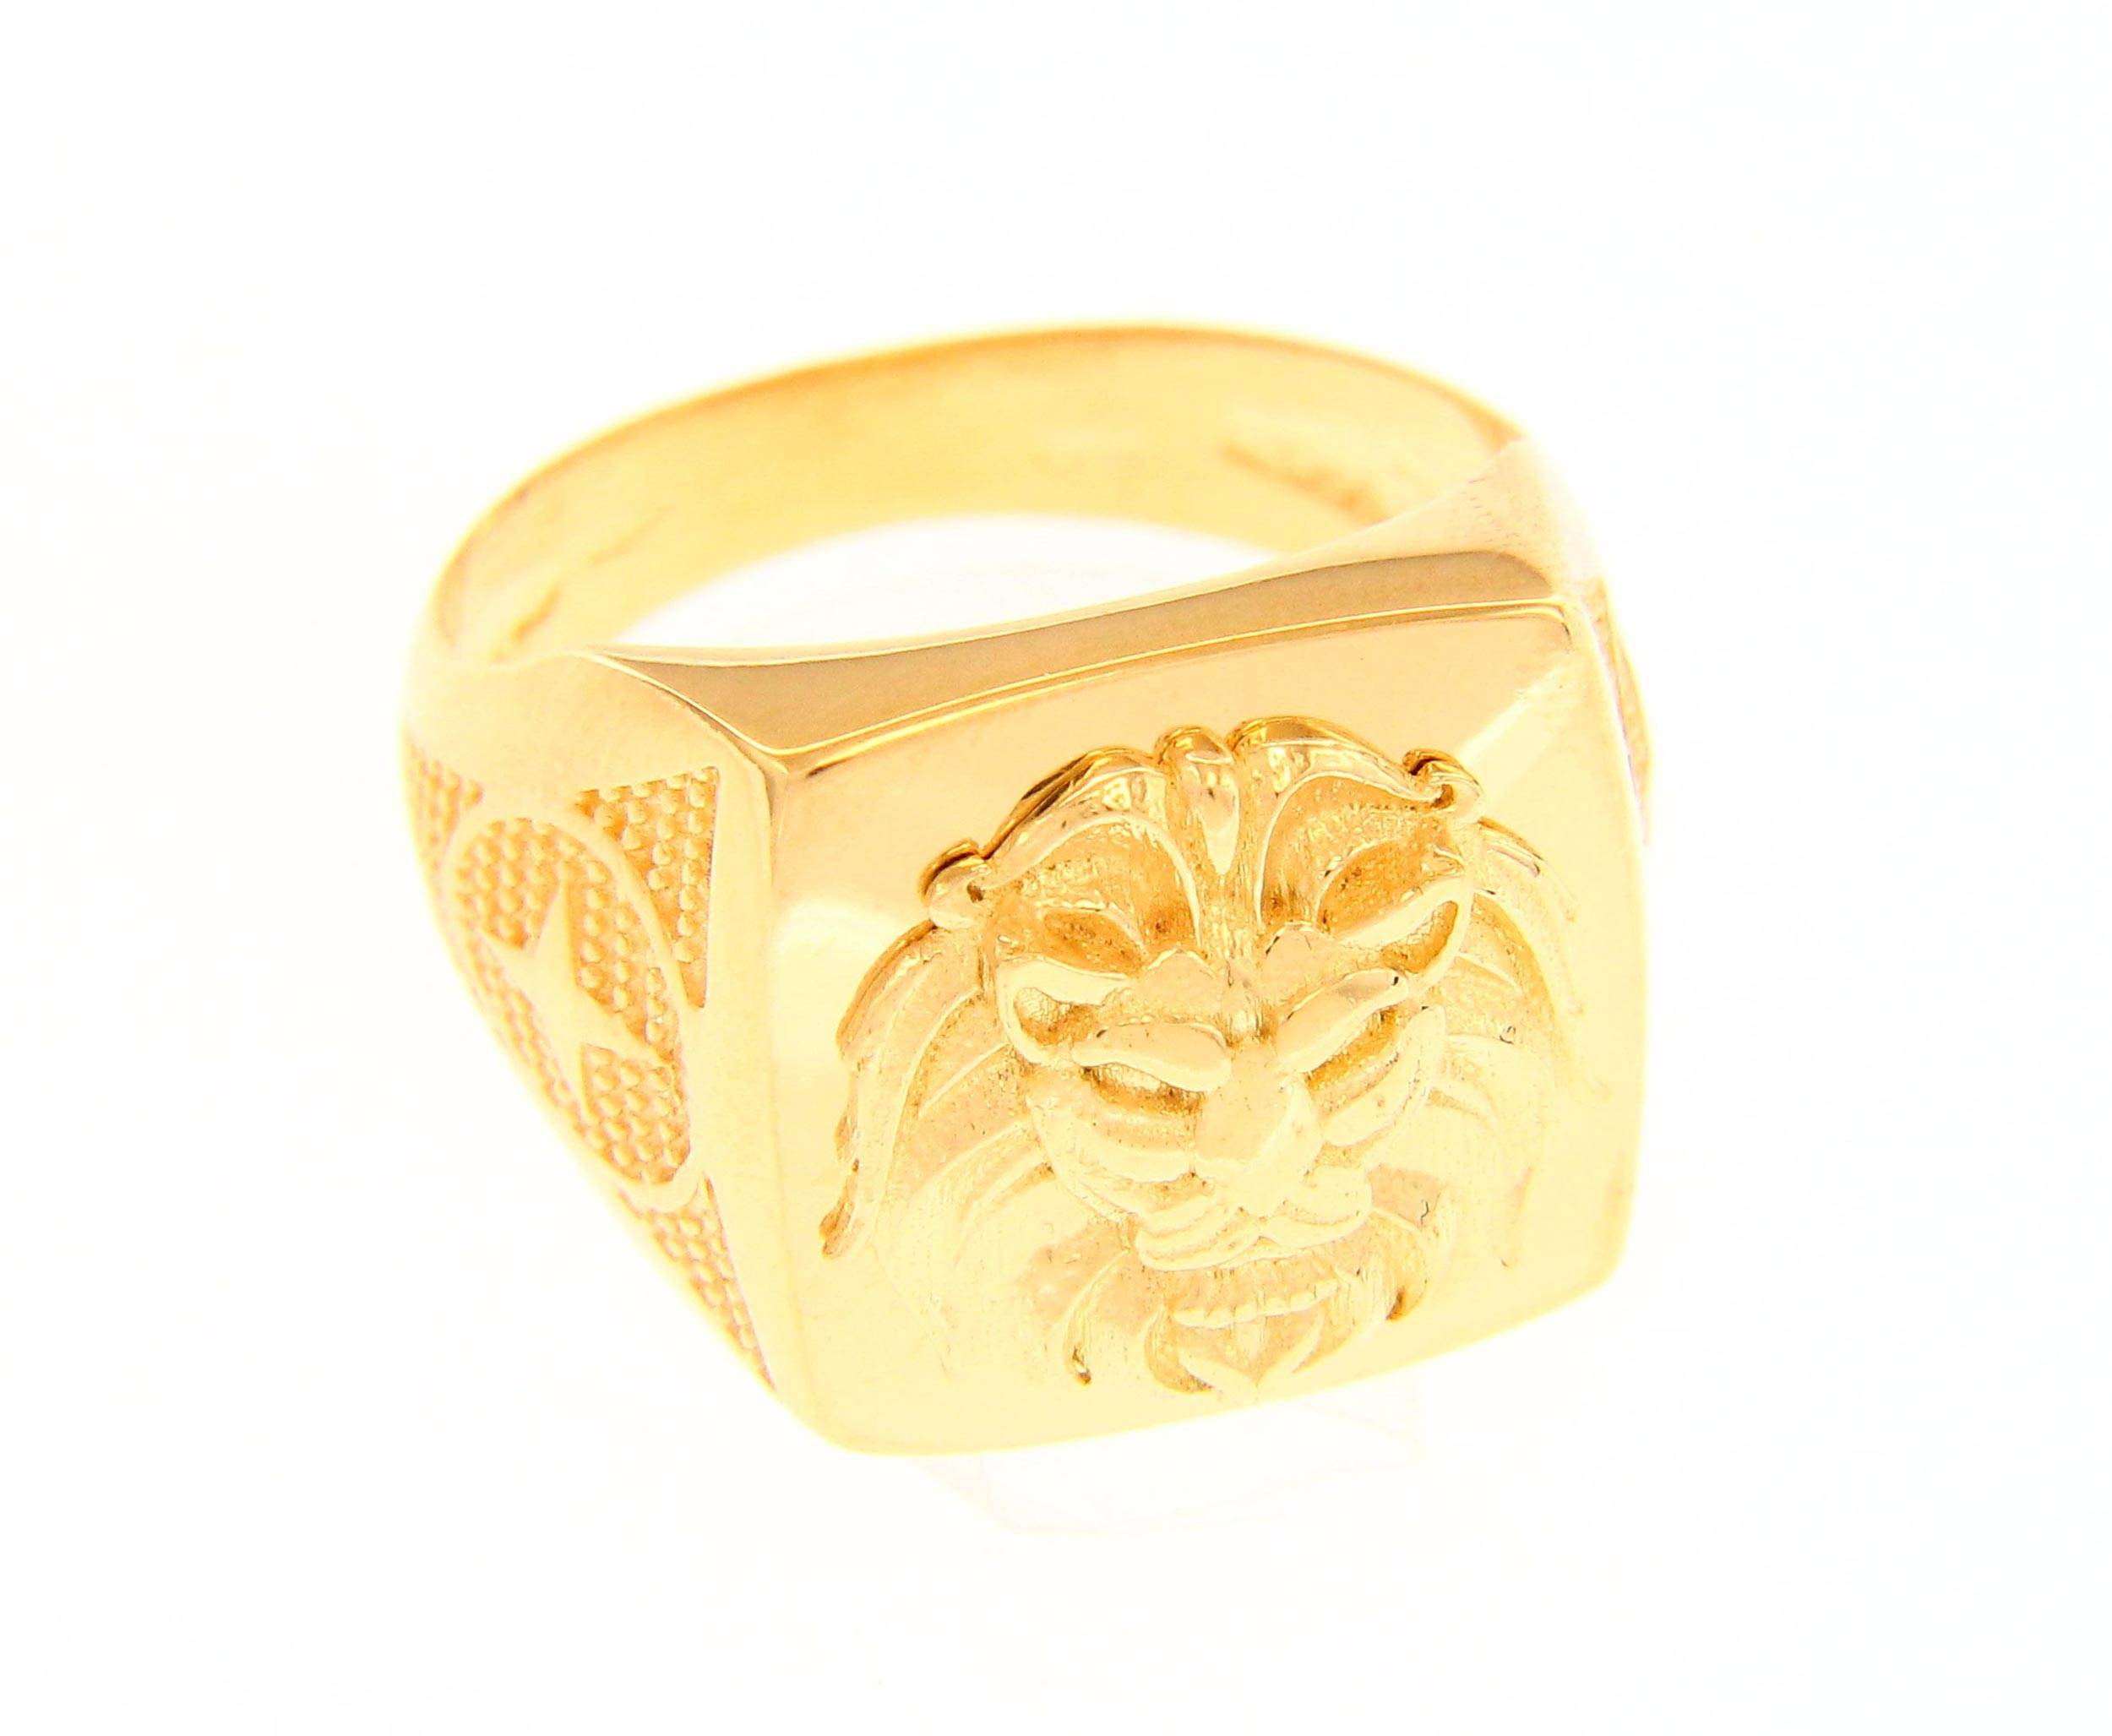 Stylish and bold 18ct Yellow gold ring with lion motif